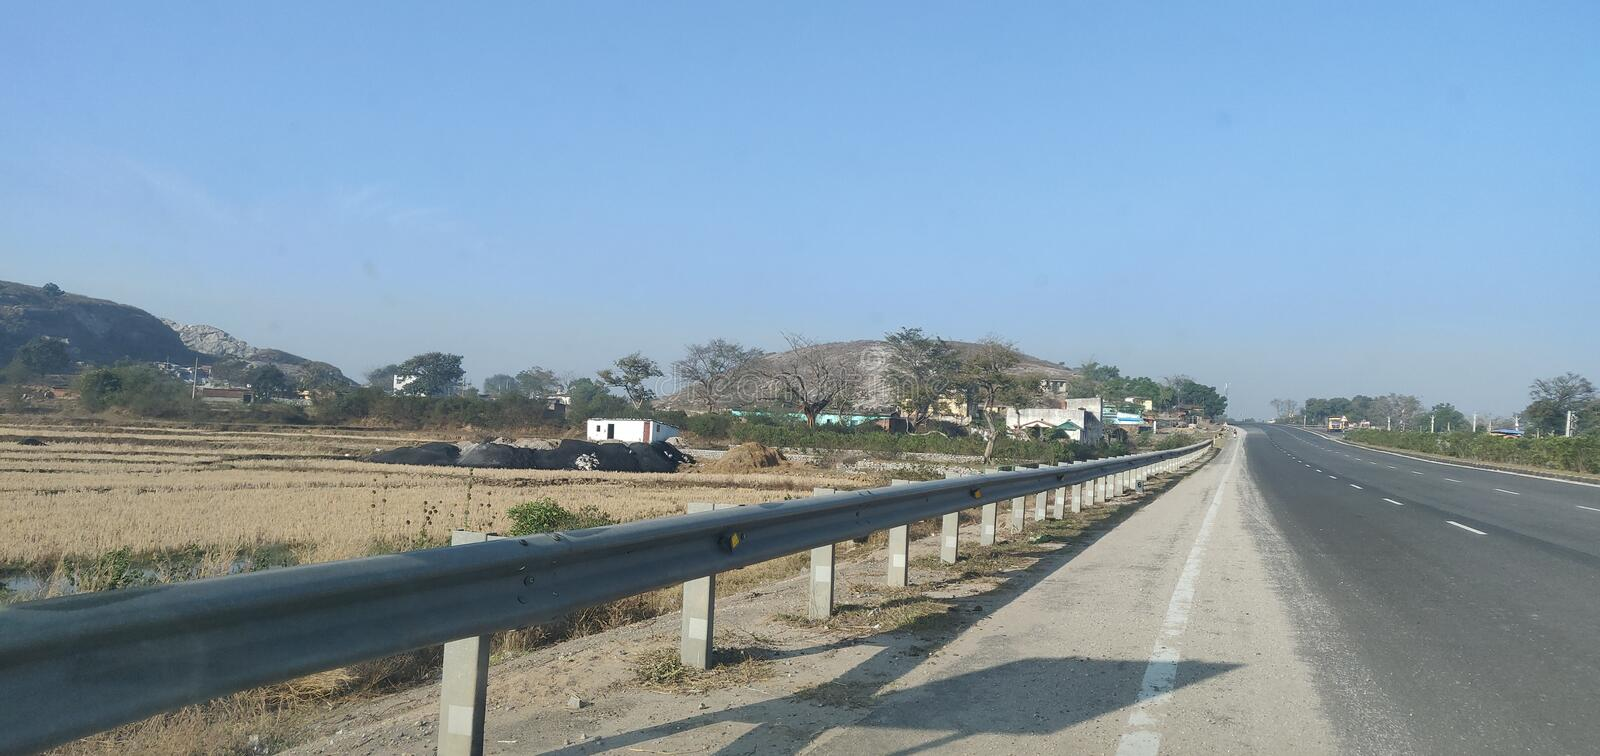 High Way near Balsiring, Ranchi, India captured during day time. Good sceninc beauty stock photography